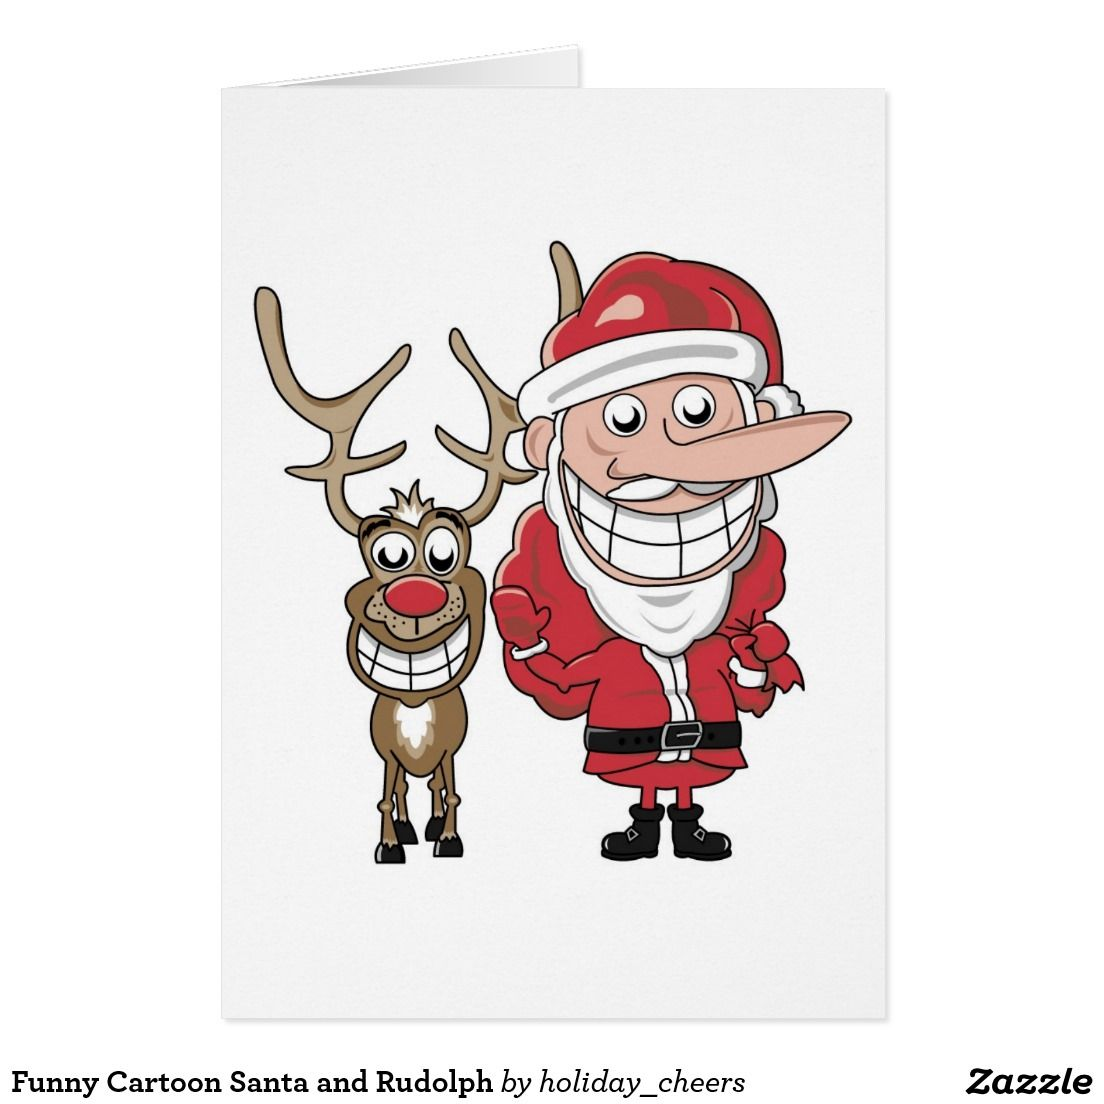 Funny Cartoon Santa and Rudolph